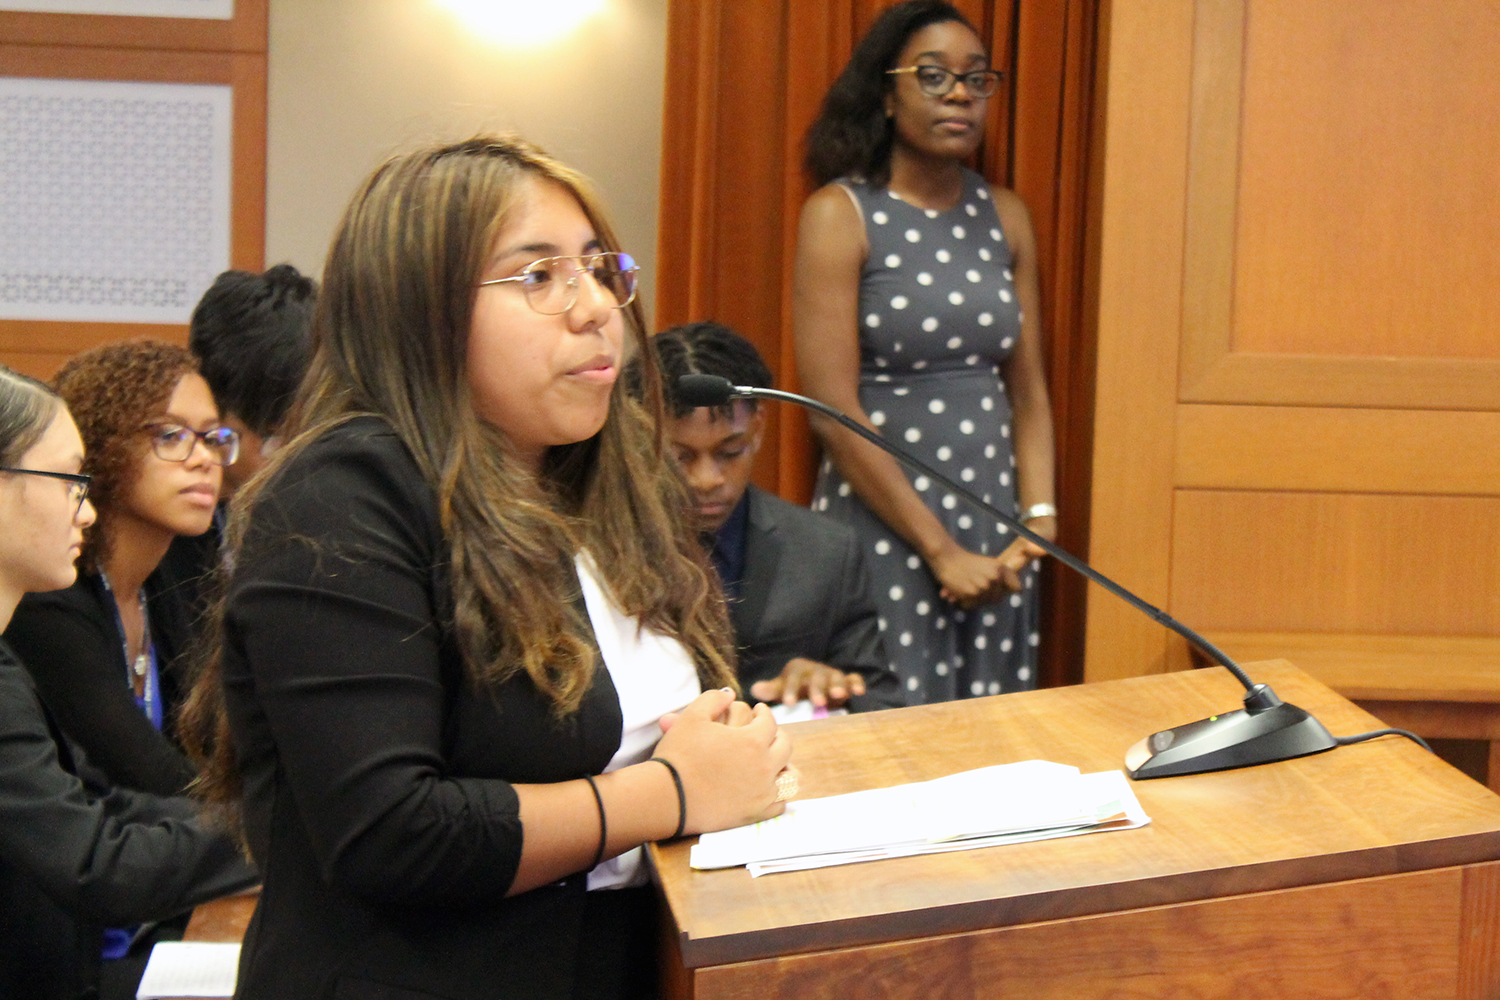 Hartford Public High School student Jasmine Jara presents the prosecution's case in a mock trial at UConn School of Law. In the background, from left, are fellow students, all members of the defense team, Frances Reyes, Dalice Gonzalez, Zam Khai, and Nick Simmonds, and a member of the teaching team, Alexandria McFarlane'18 JD.